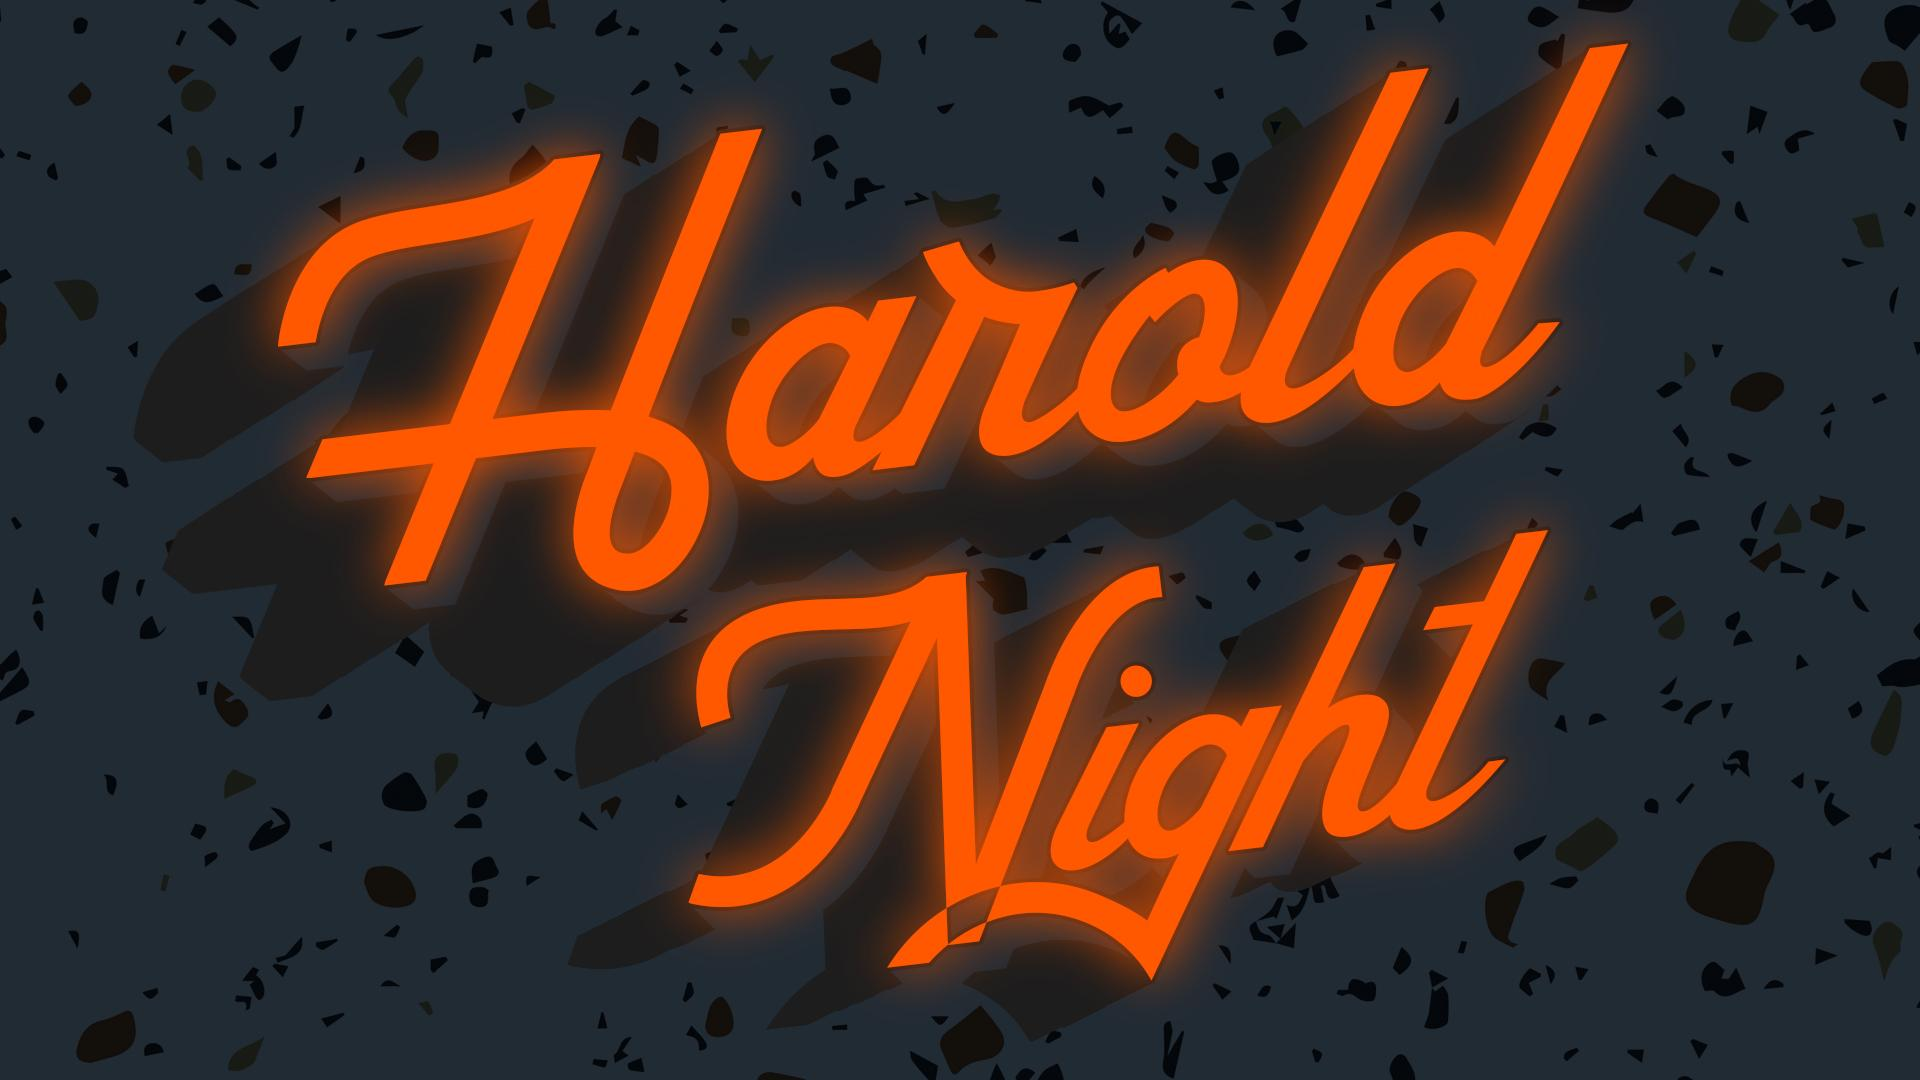 HAROLD NIGHT w/ Meridian